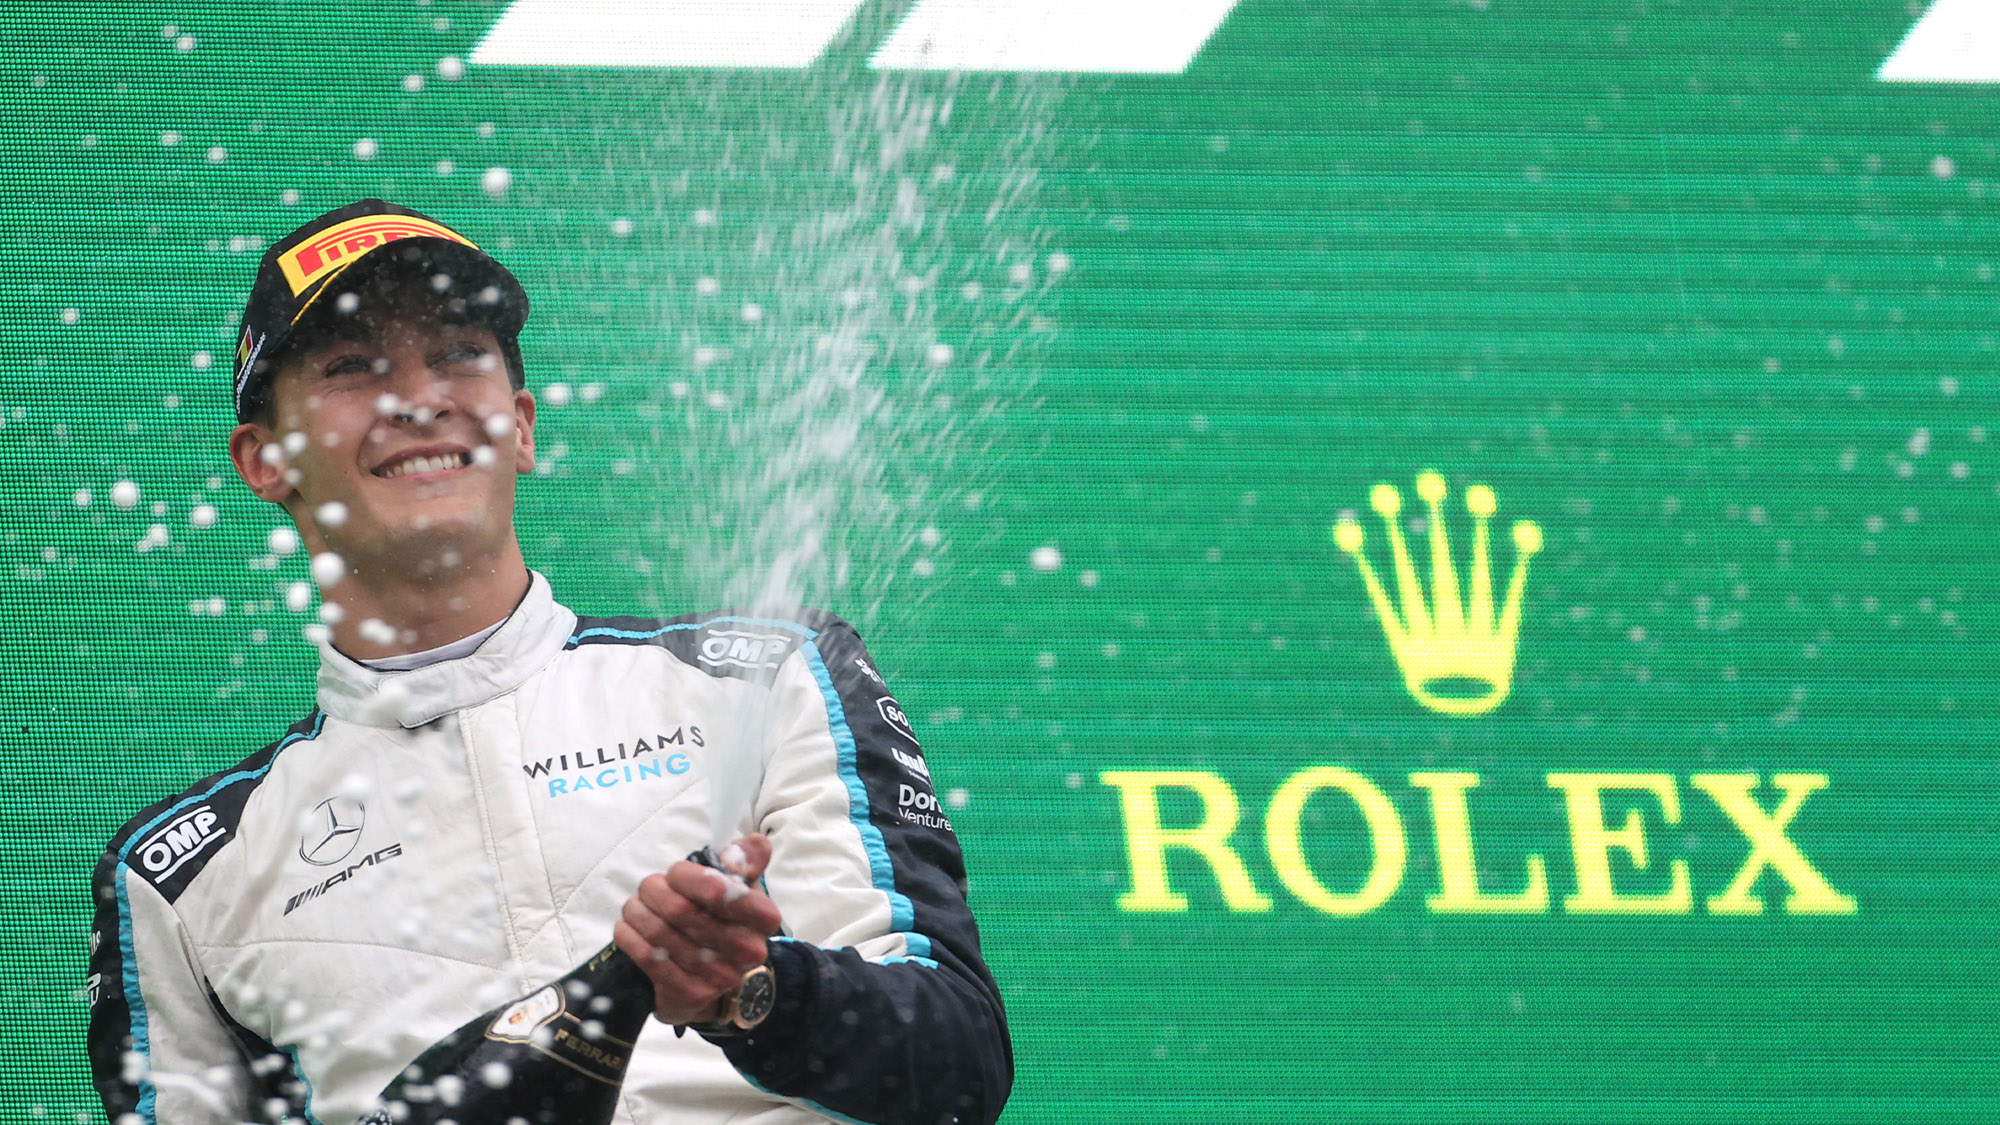 George Russell sprays champagne on the podium after the 2021 Belgian Grand Prix